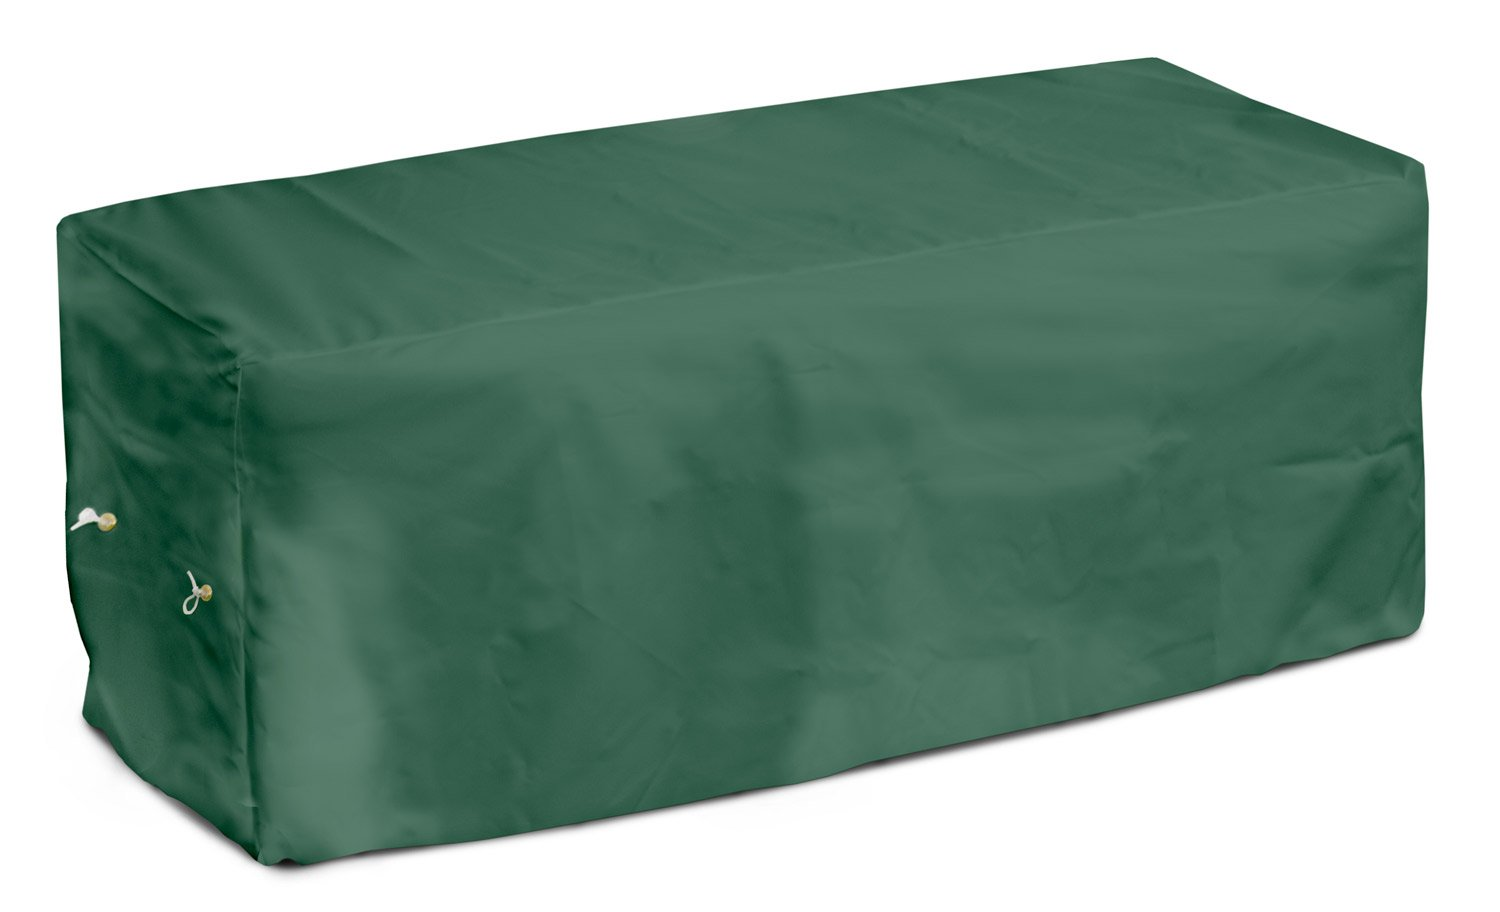 KoverRoos Weathermax 64207 8-Feet Bench Cover, 96-Inch Width by 25-Inch Diameter by 36-Inch Height, Forest Green